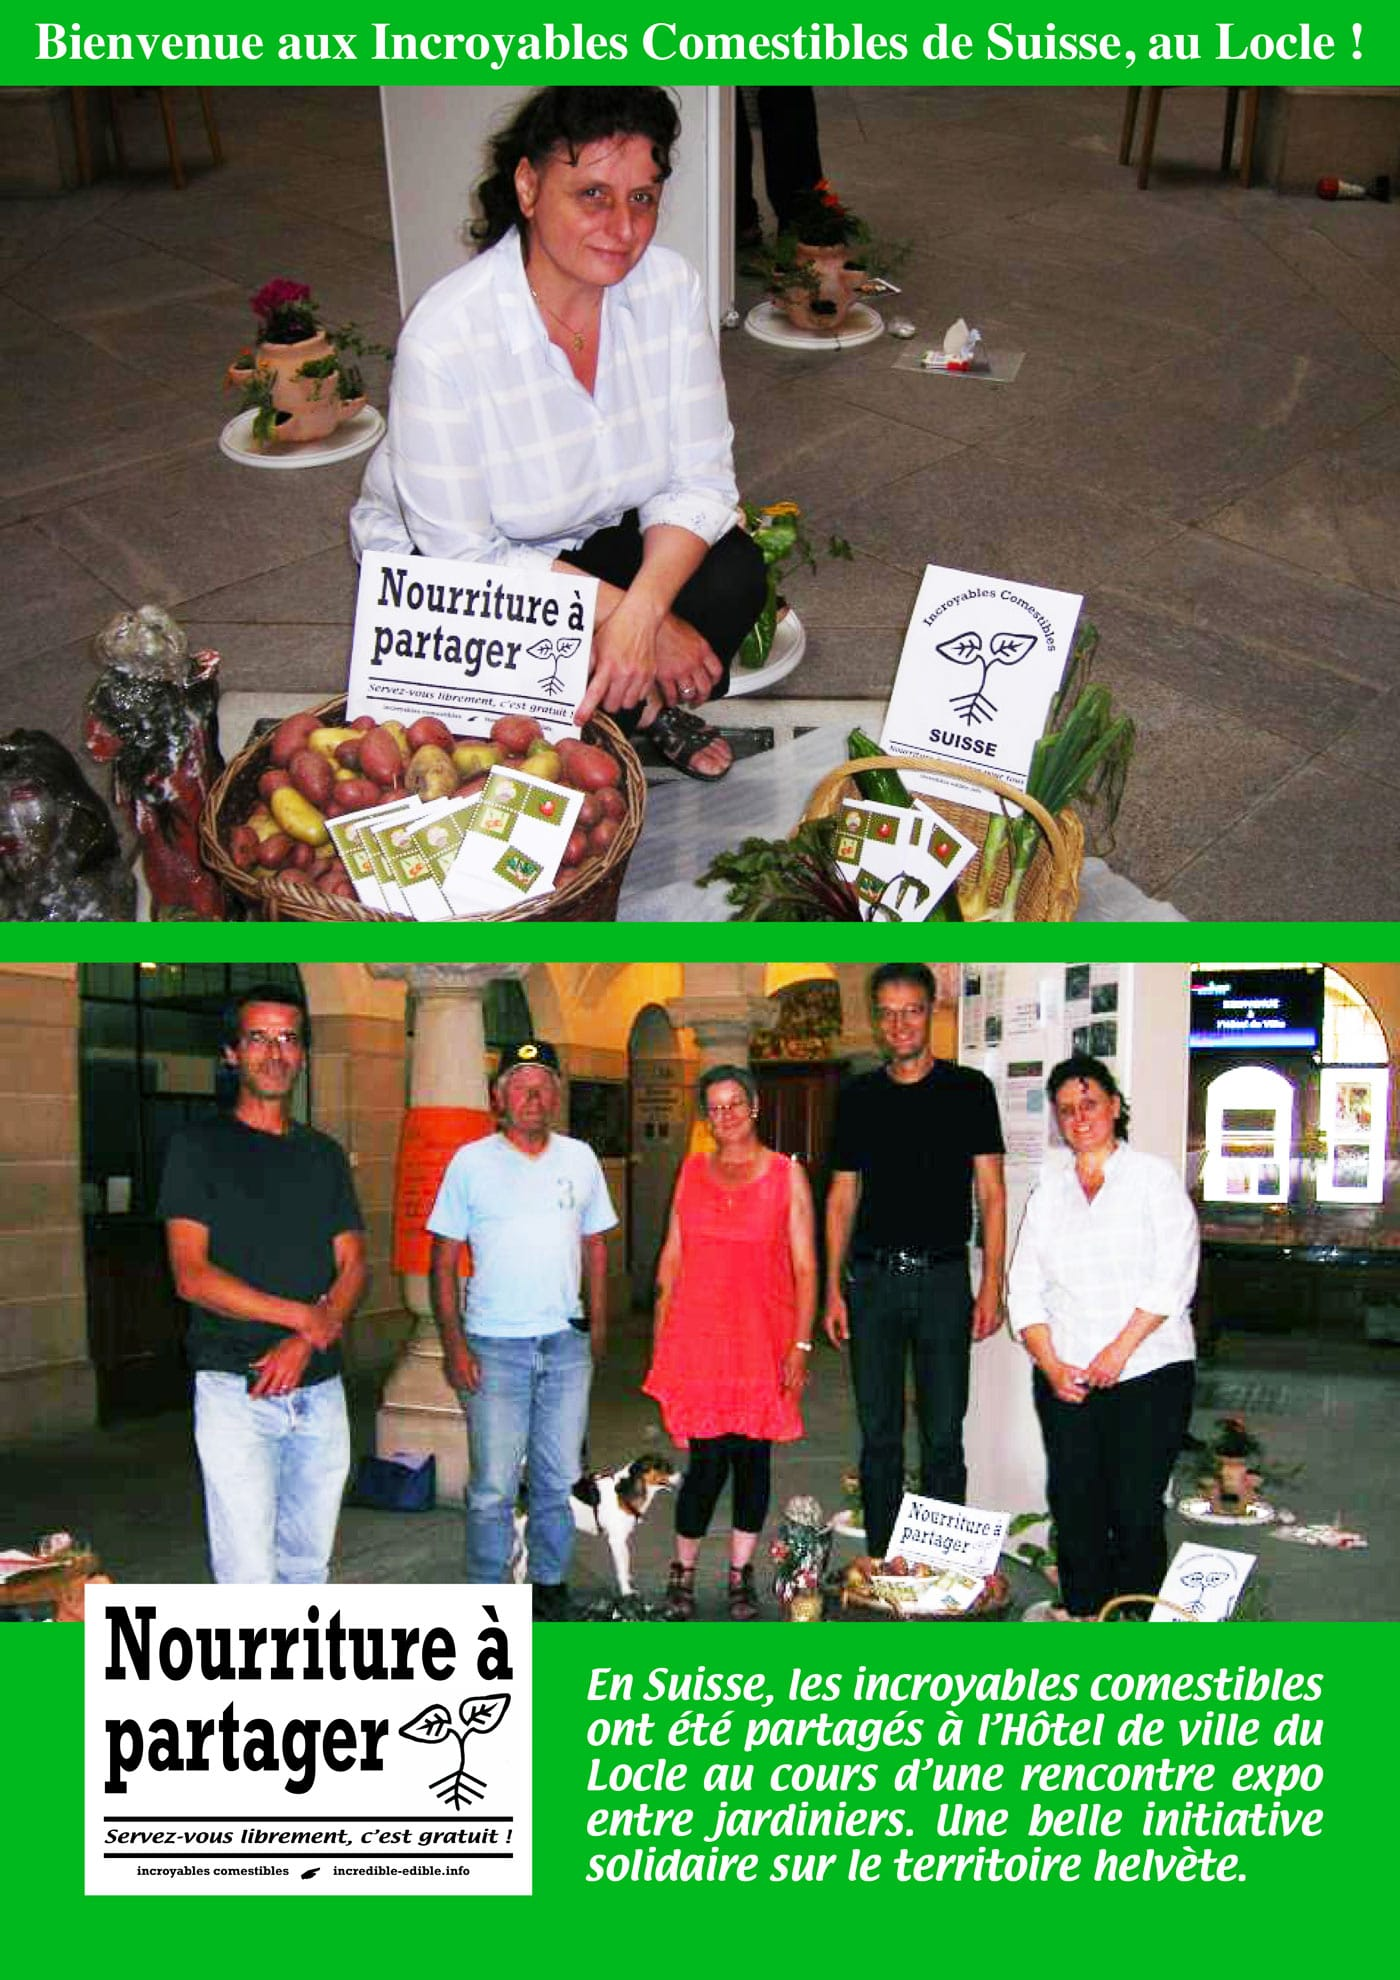 c467_incredible_edible_todmorden_suisse_locle_incroyables_comestibles_w1400